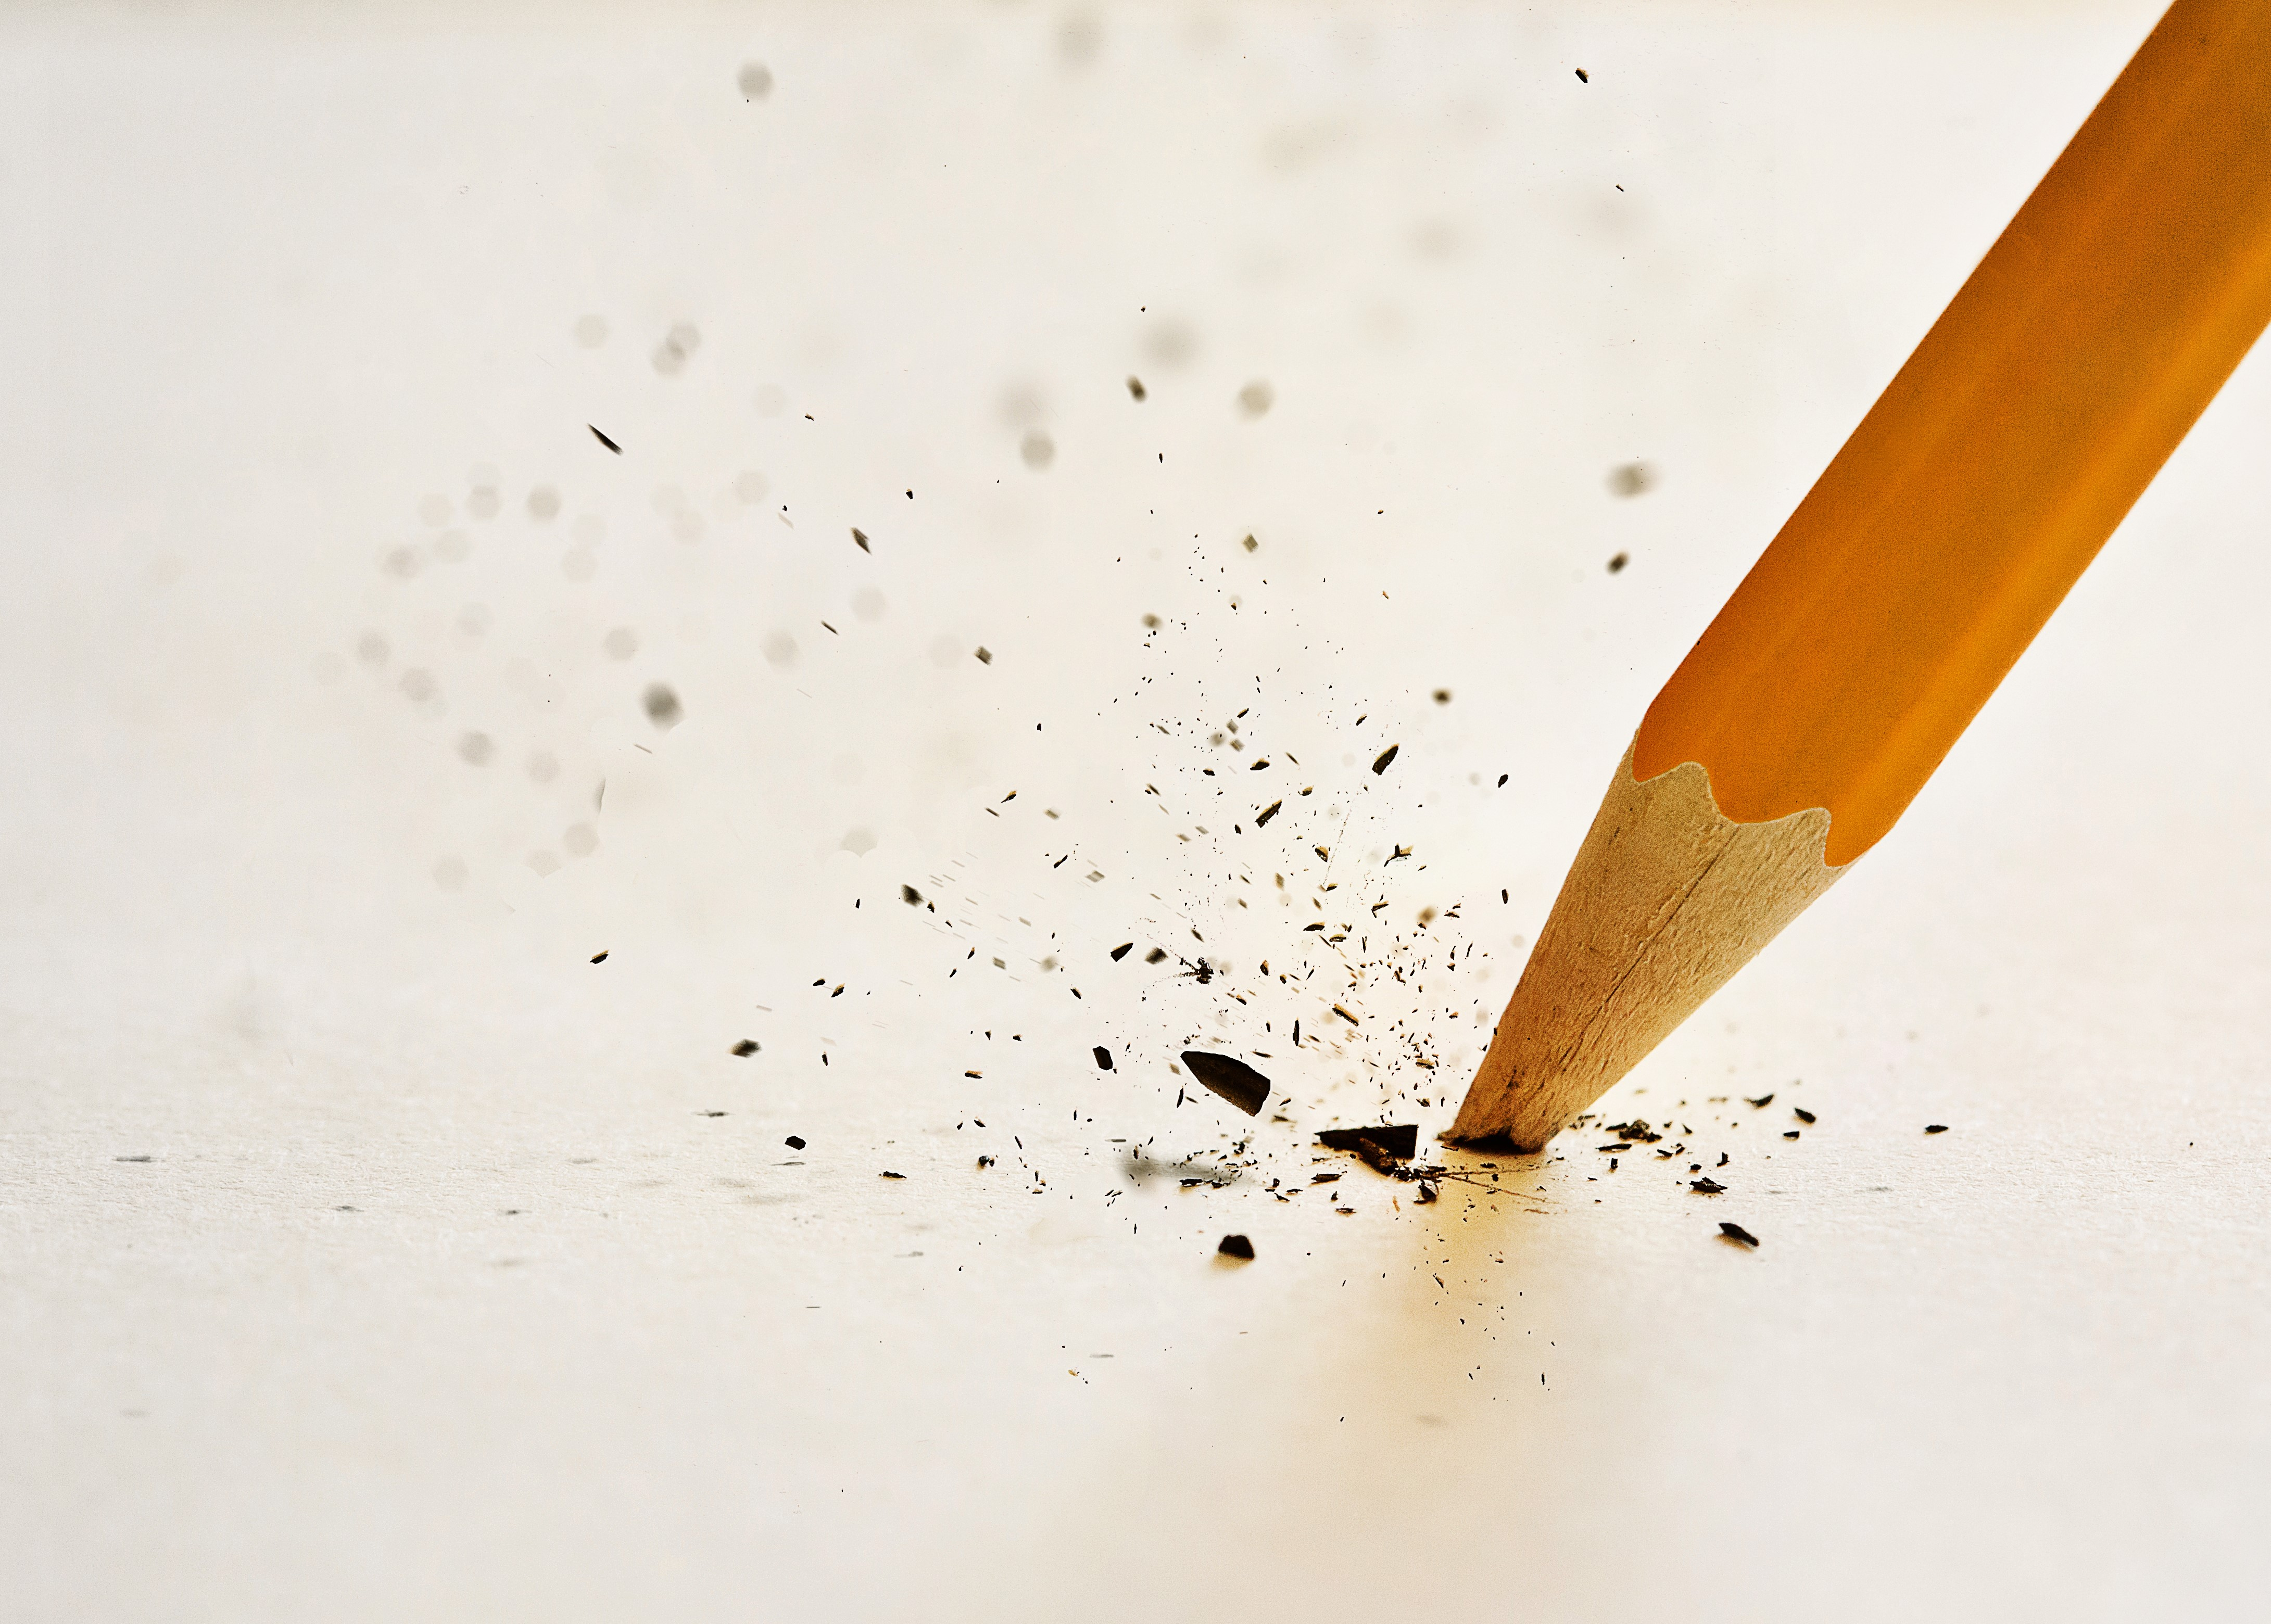 the-lead-of-the-pencil-breaking-after-pressing-down-too-hard_rsGxxb5UPe